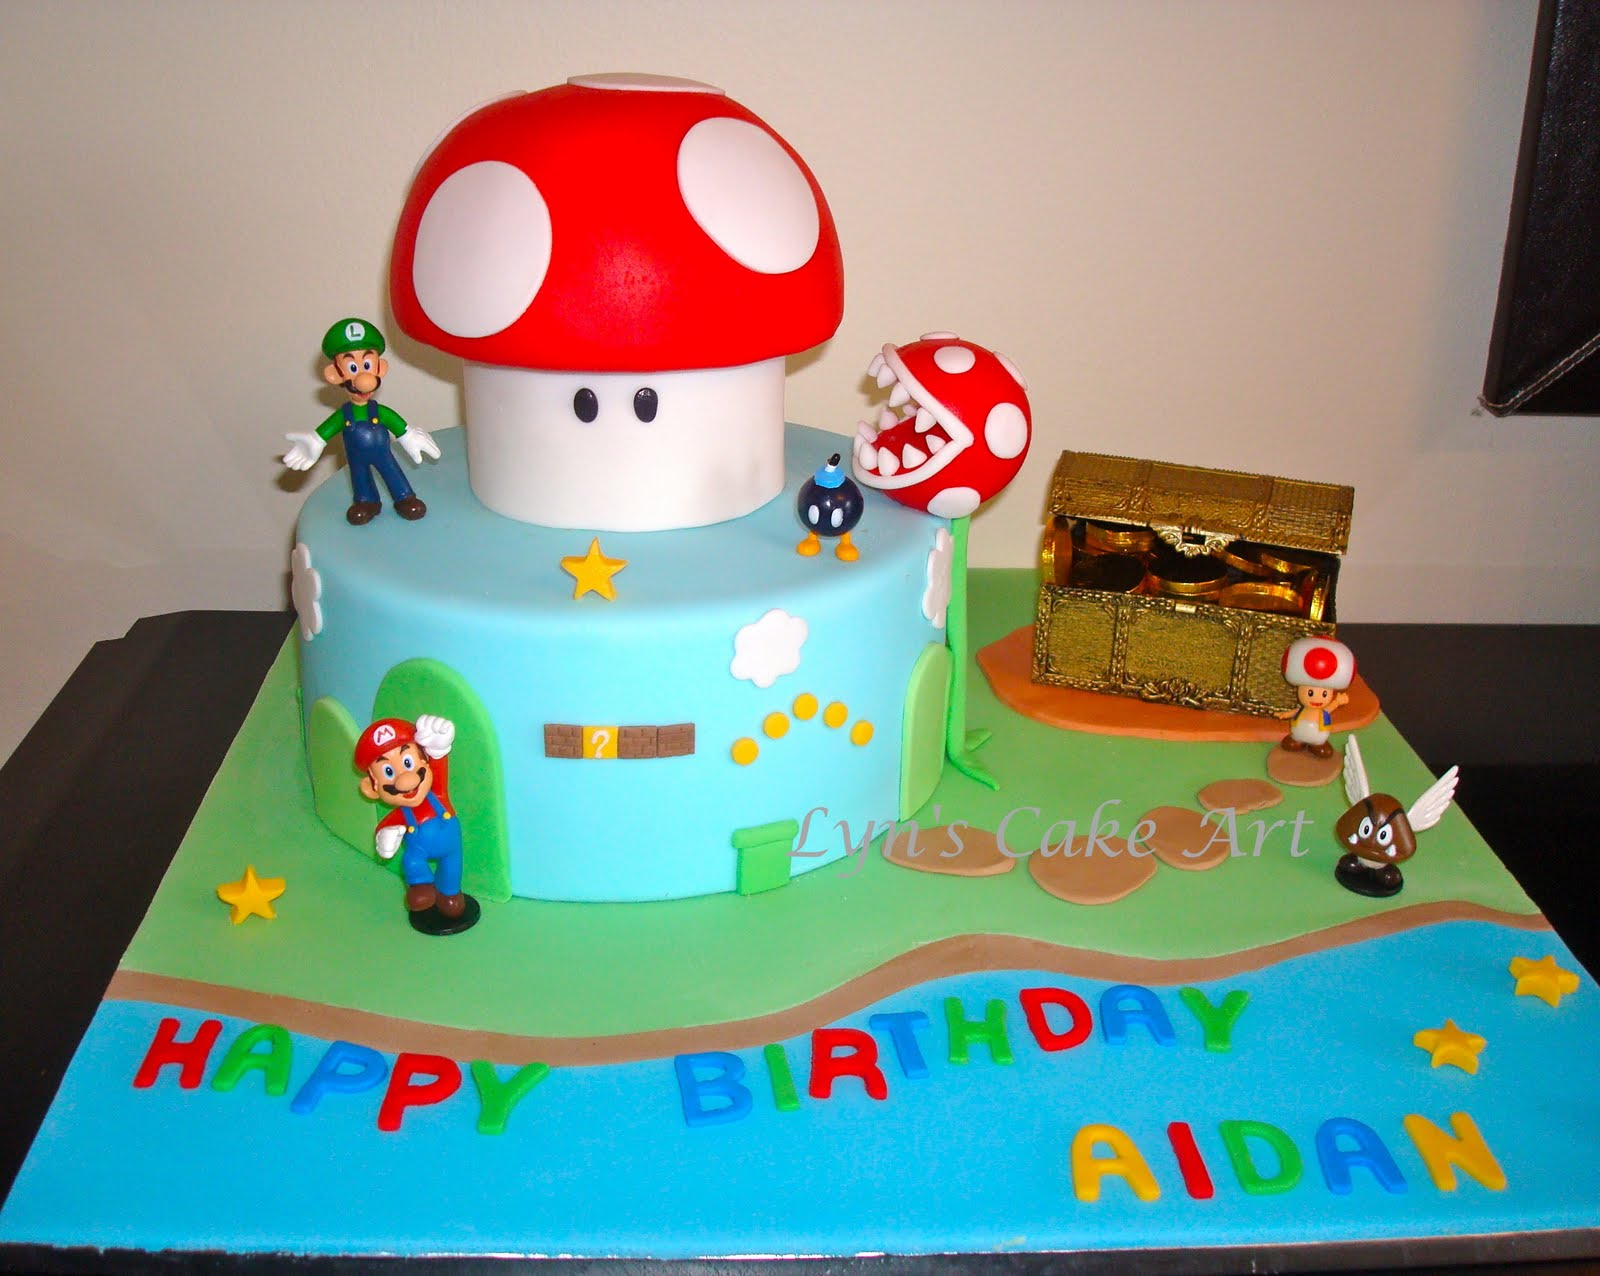 Cake Art Supplies Castle Hill : Lyn s Cake Art: Another Super Mario Cake